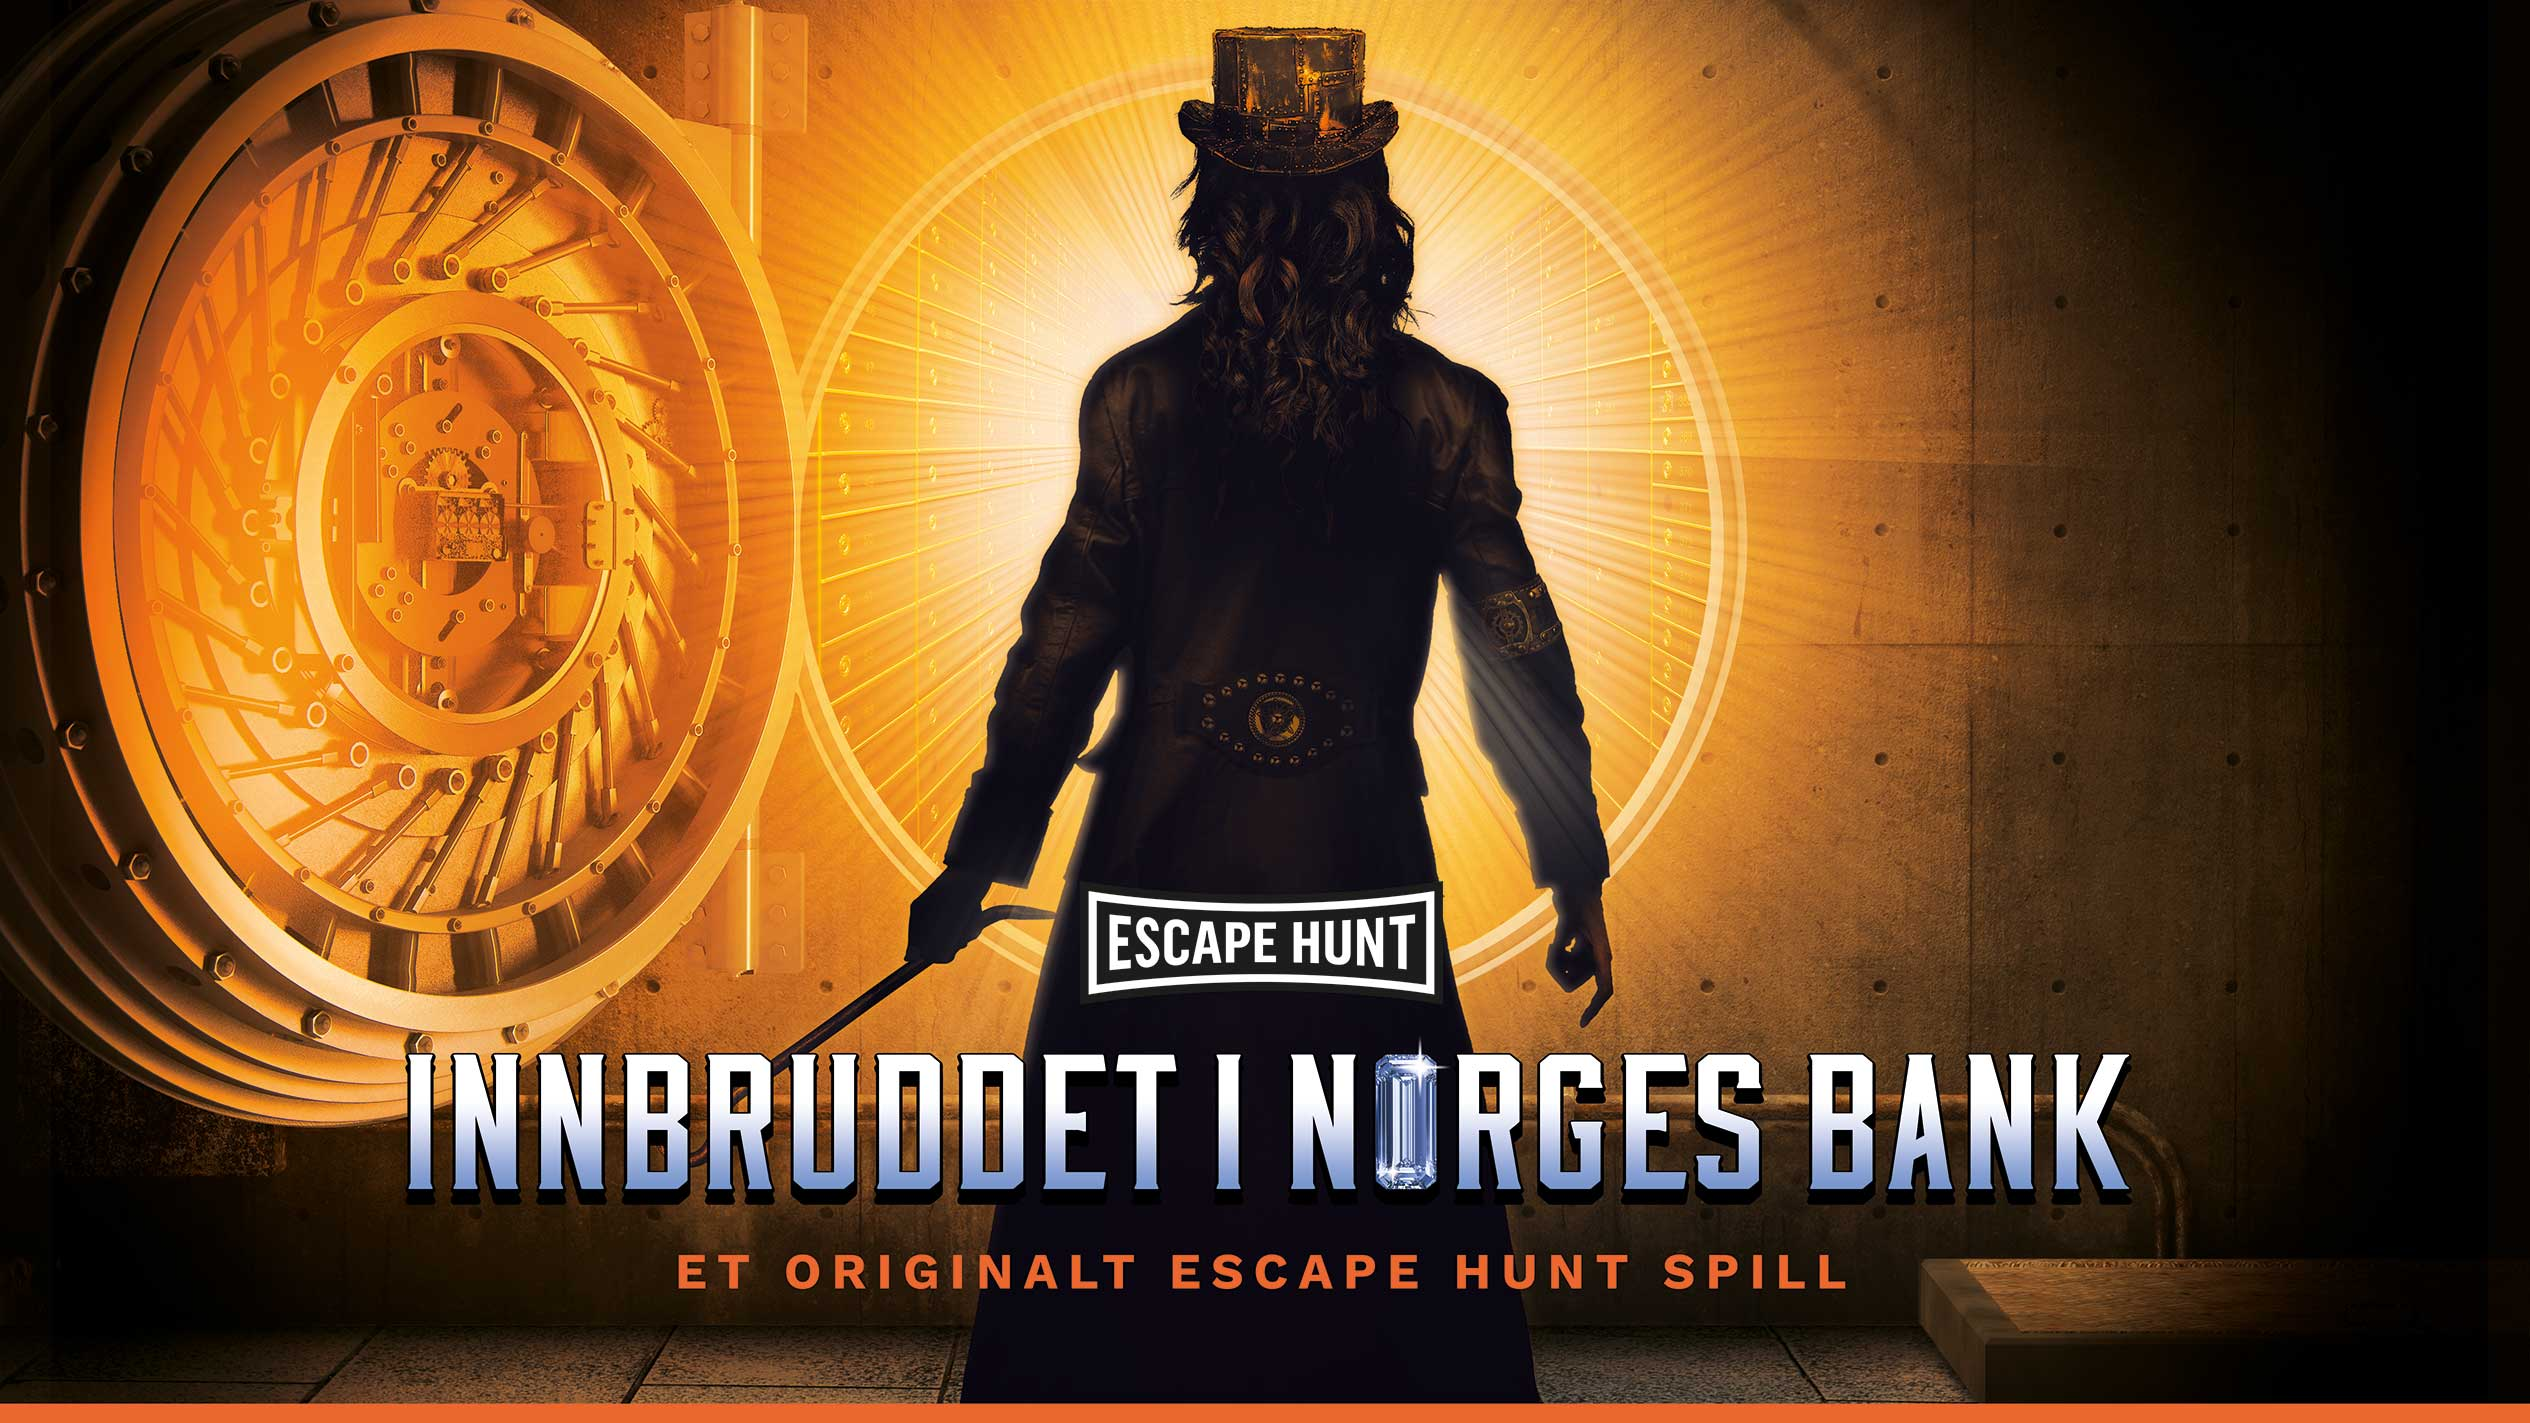 Escape Room Bergen sentrum Escape Hunt Innbruddet i Norges Bank